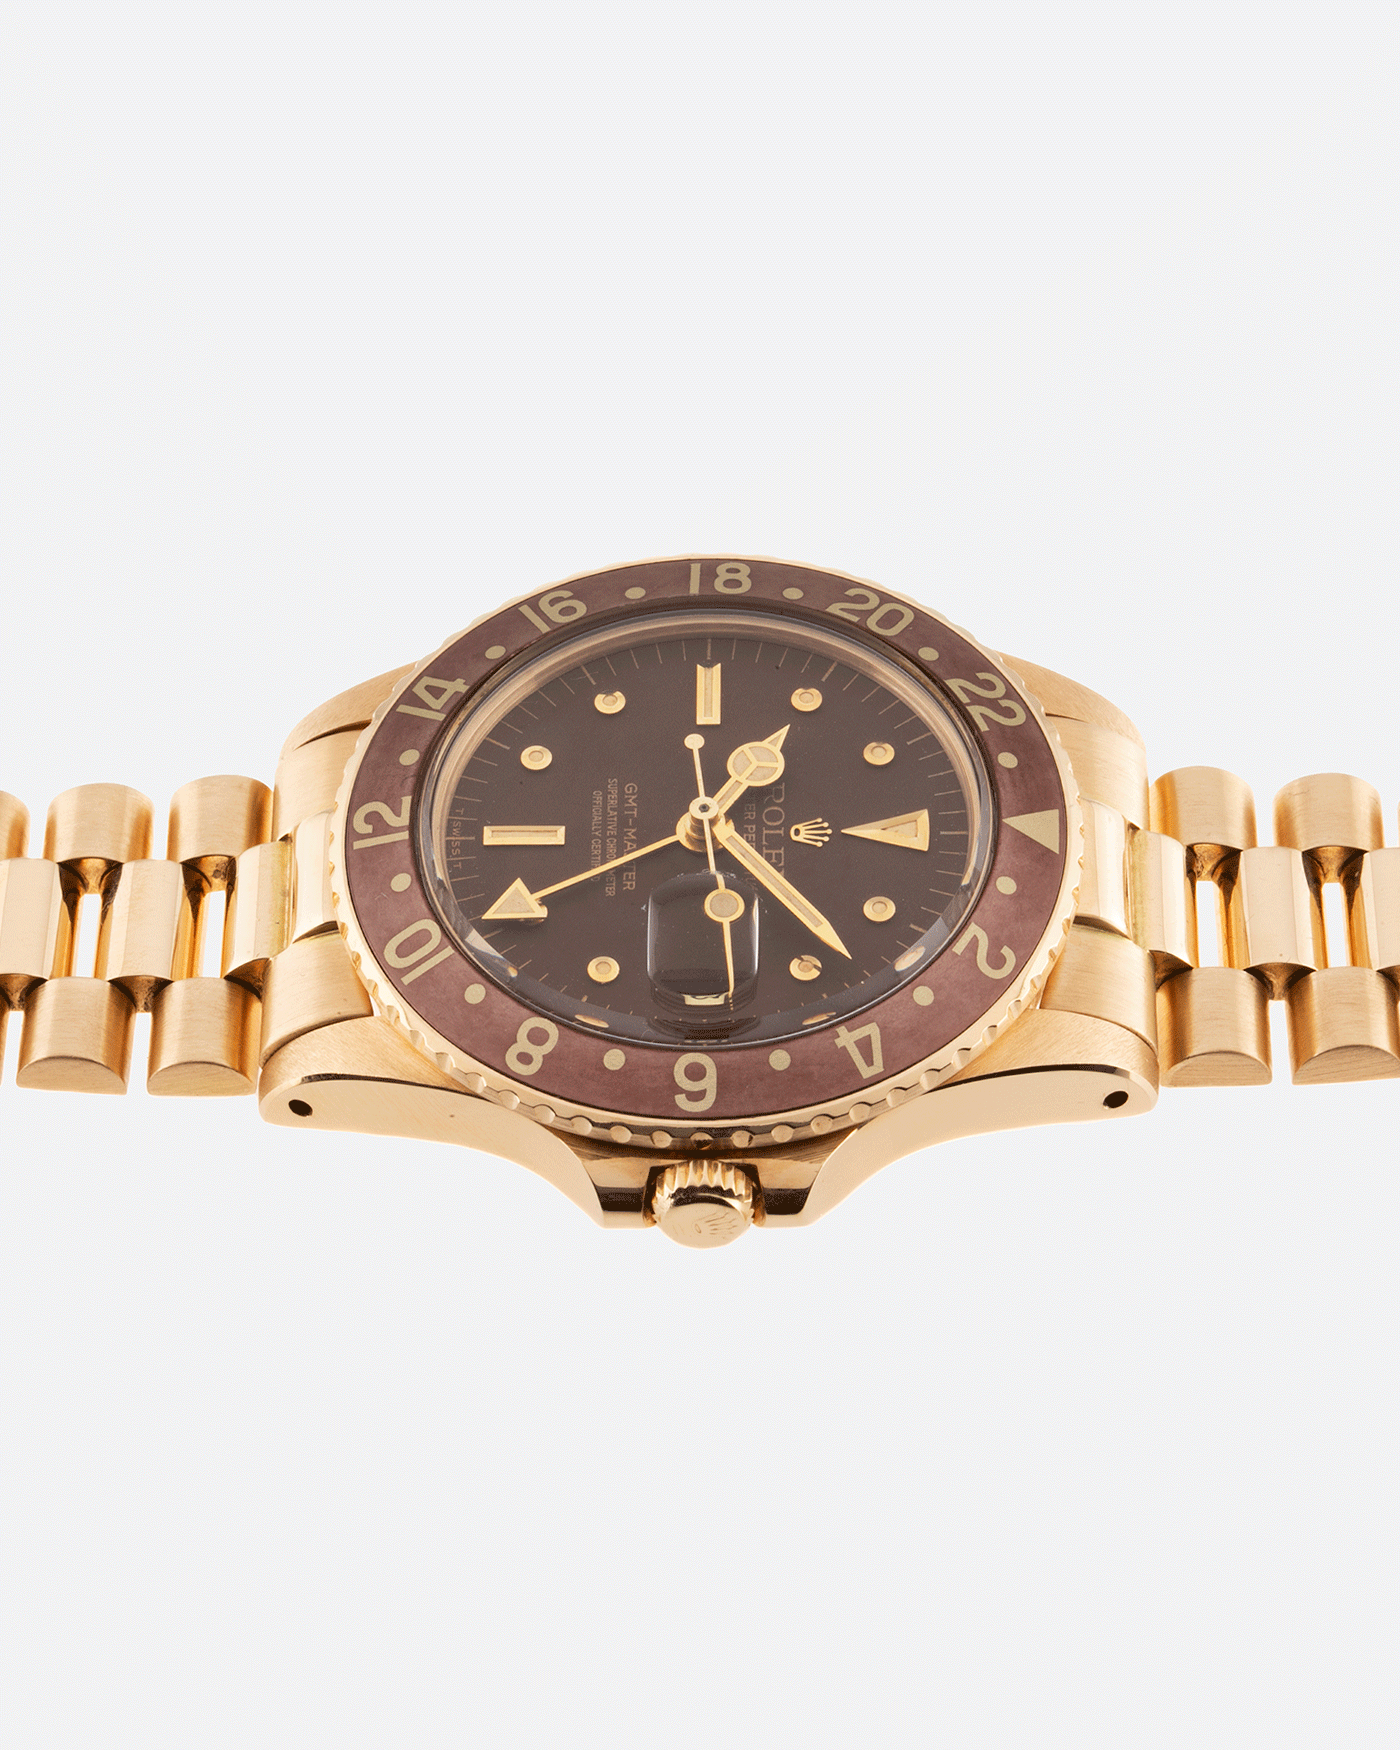 Brand: Rolex Year: 1978 Model: GMT-Master Reference Number: 1675 Serial Number: 5.3 mil Material: 18k Yellow Gold Movement: Cal. 1570 Case Diameter: 40mm Lug Width: 20mm Strap: 18k Yellow Gold Rolex President Bracelet